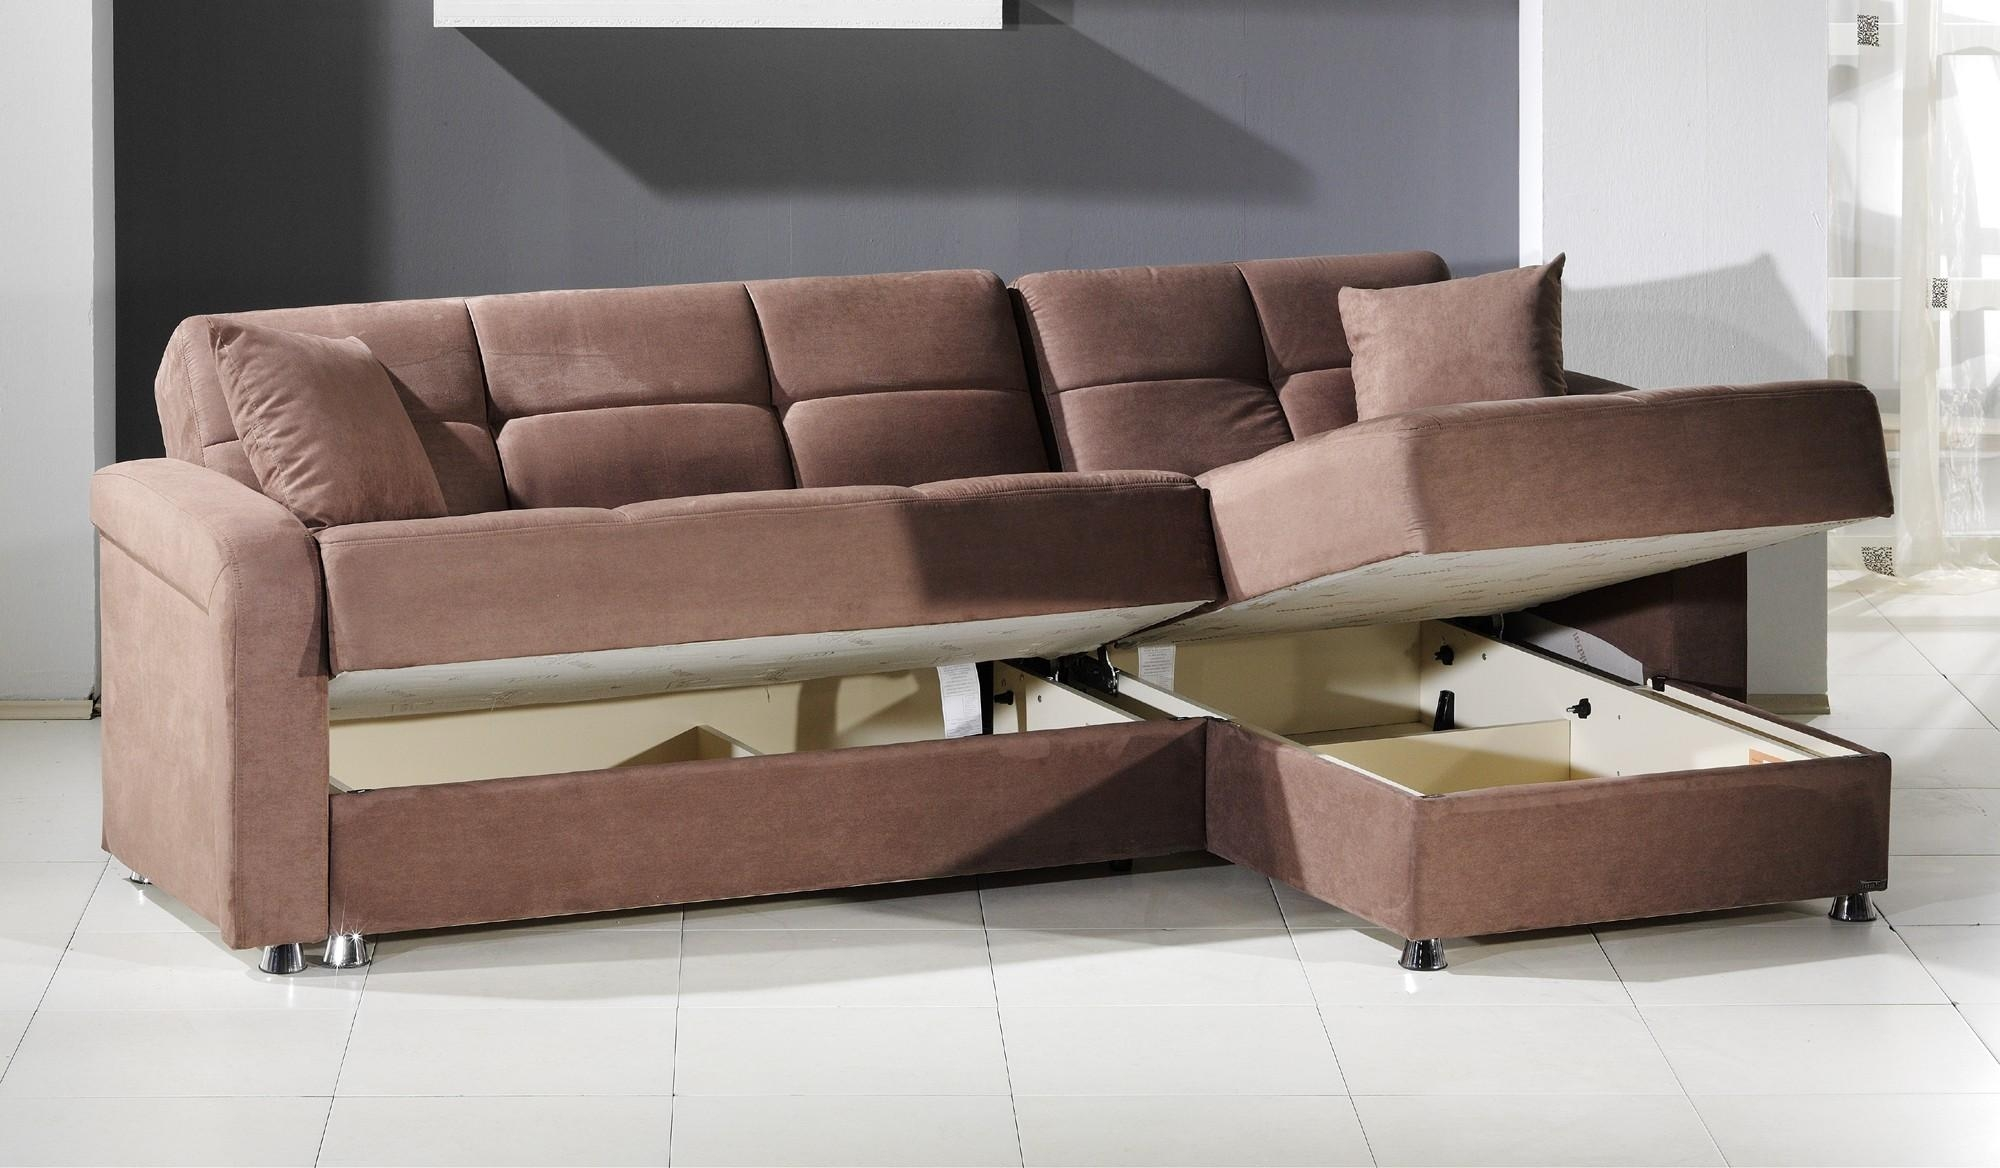 Vision Convertible Sectional Sofa In Rainbow Truffleistikbal Within Convertible Sectional (Image 15 of 15)